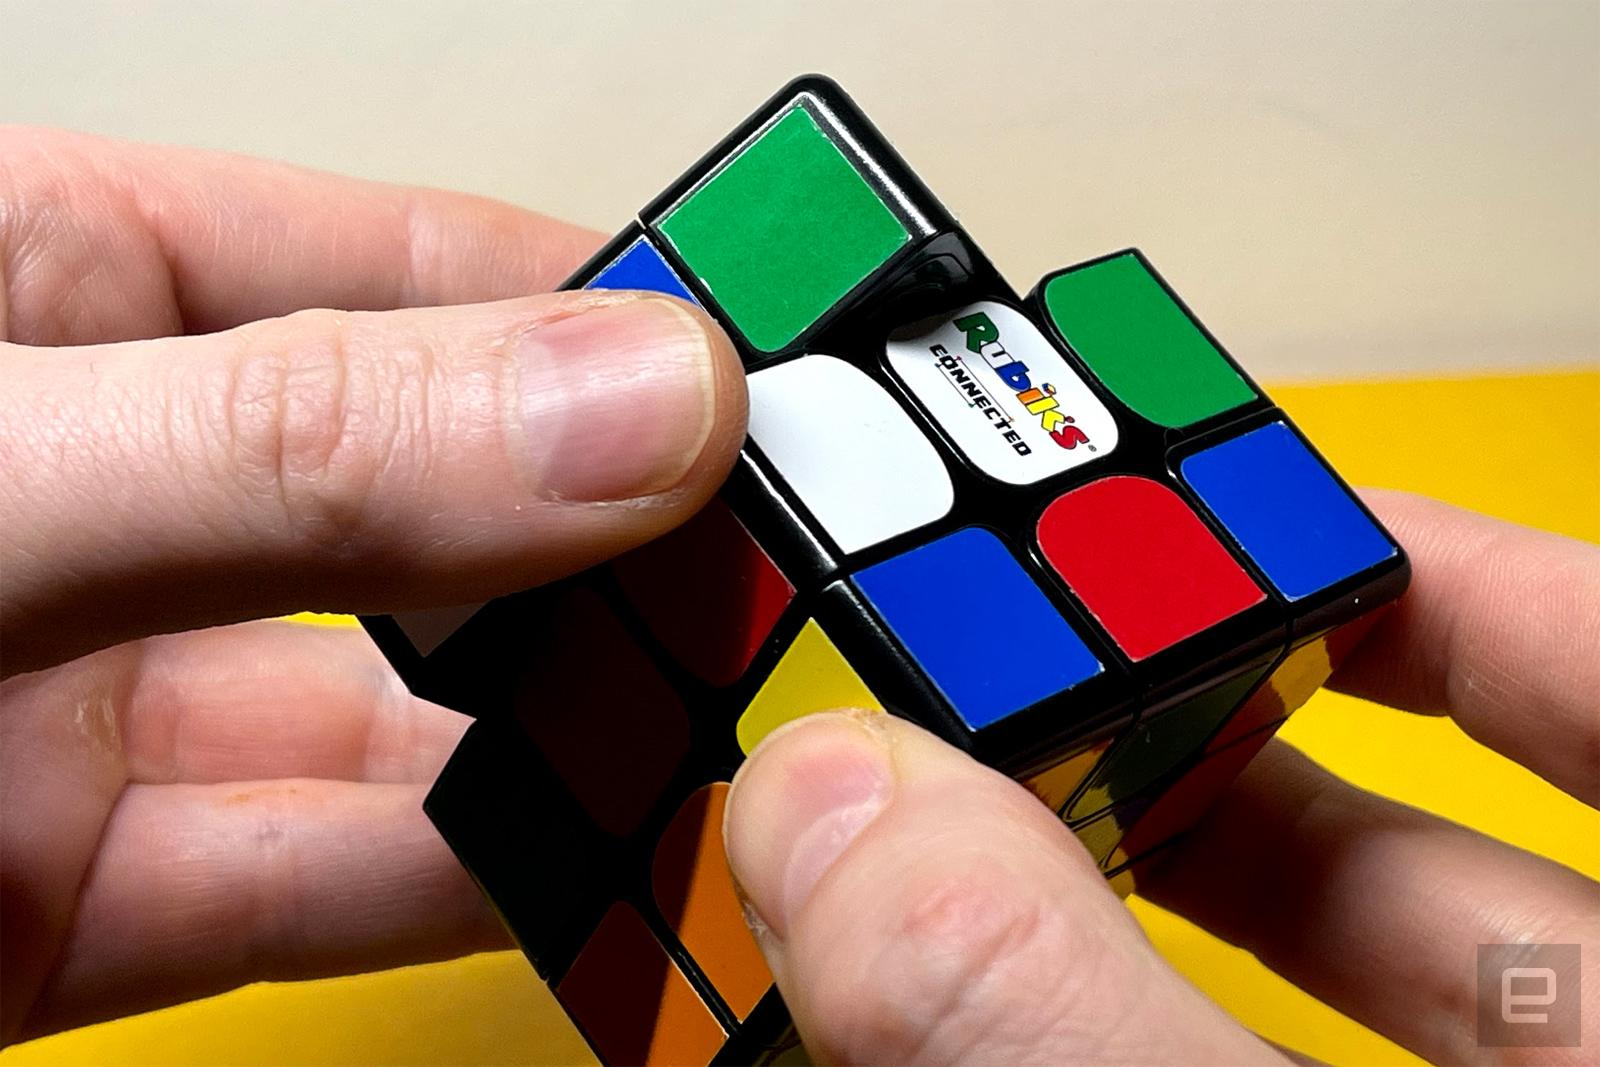 With the connected cube, I learned how to solve a Rubik's cube | Engadget